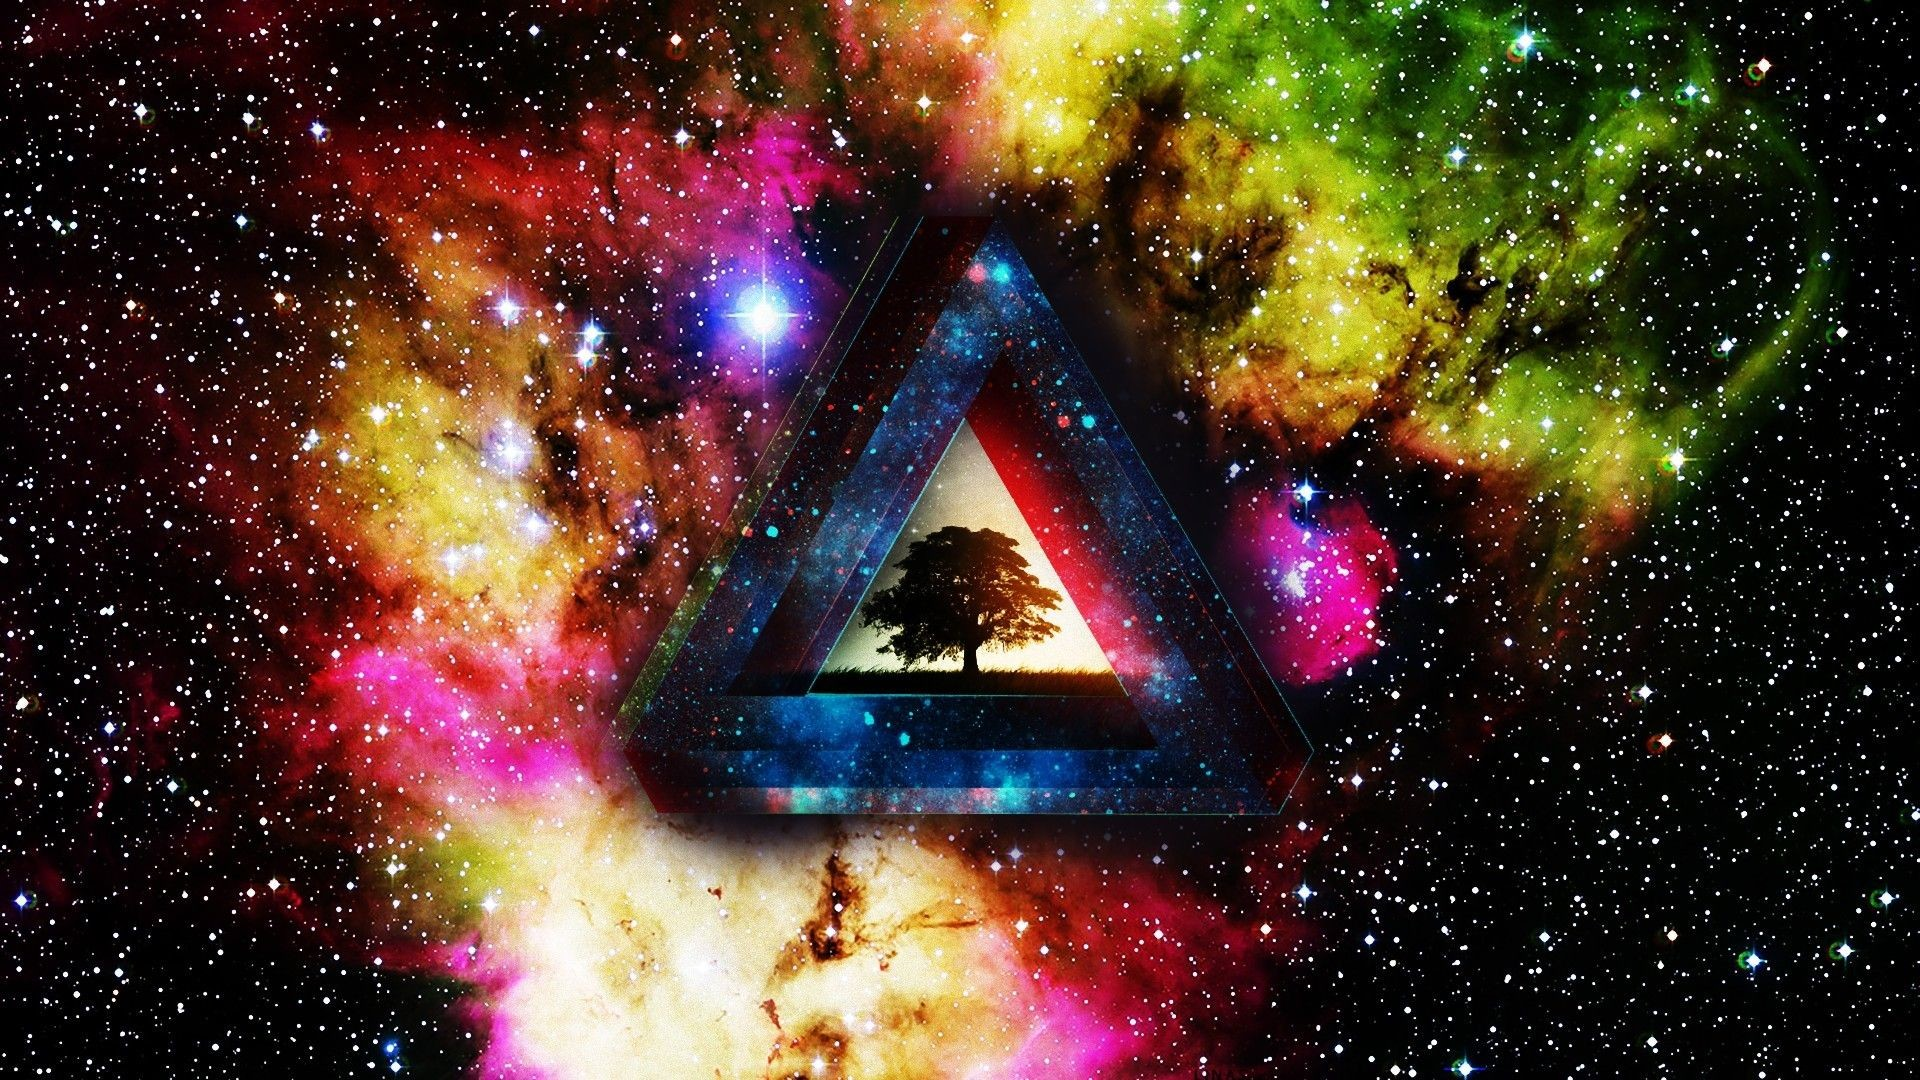 Collection of Trippy Wallpapers Hd on HDWallpapers Trippy Pictures Wallpapers  Wallpapers)